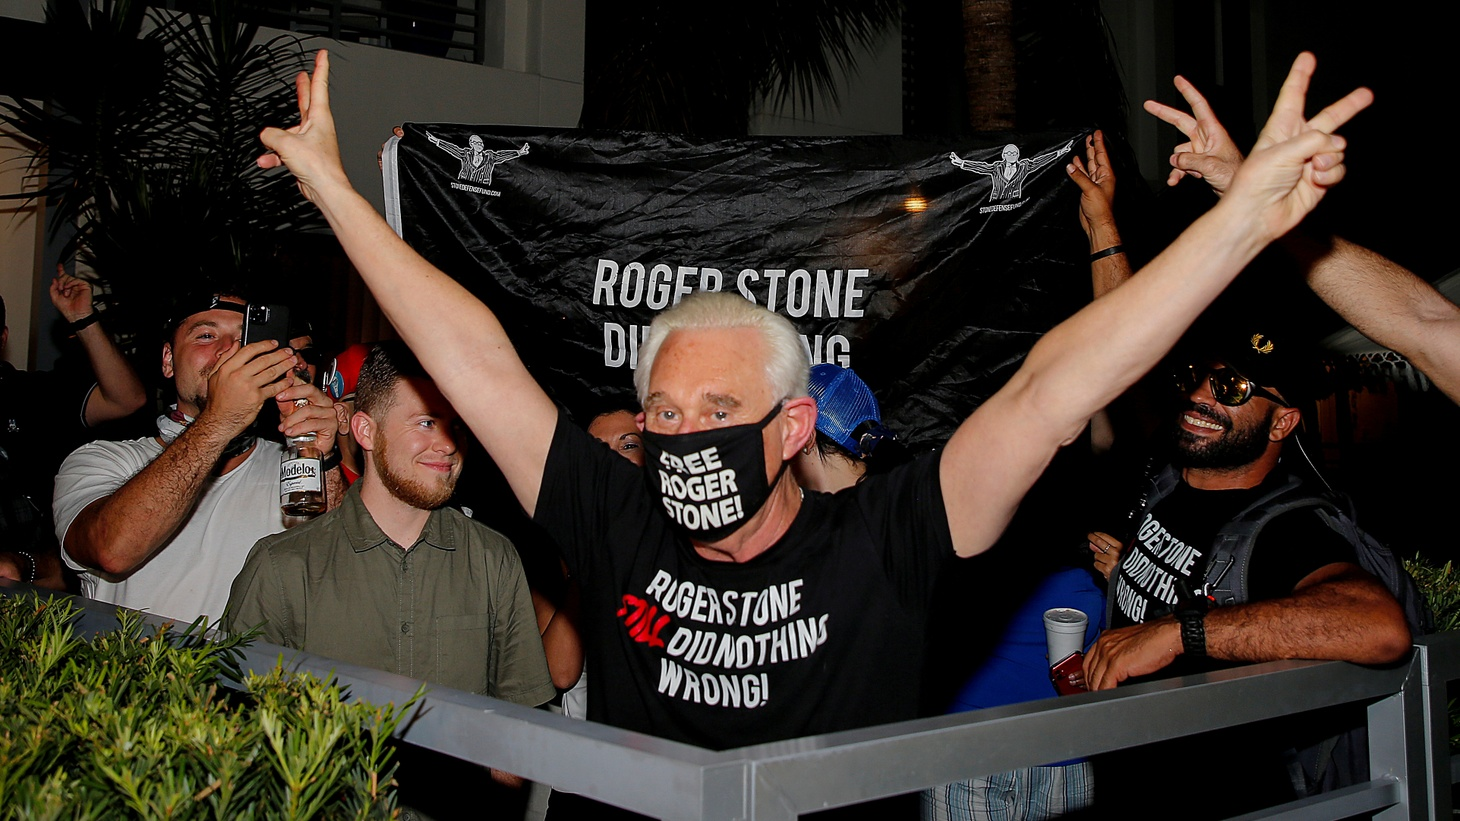 Roger Stone, a longtime friend and adviser of U.S. President Donald Trump, reacts after Trump commuted his federal prison sentence, outside his home in Fort Lauderdale, Florida, U.S. July 10, 2020.